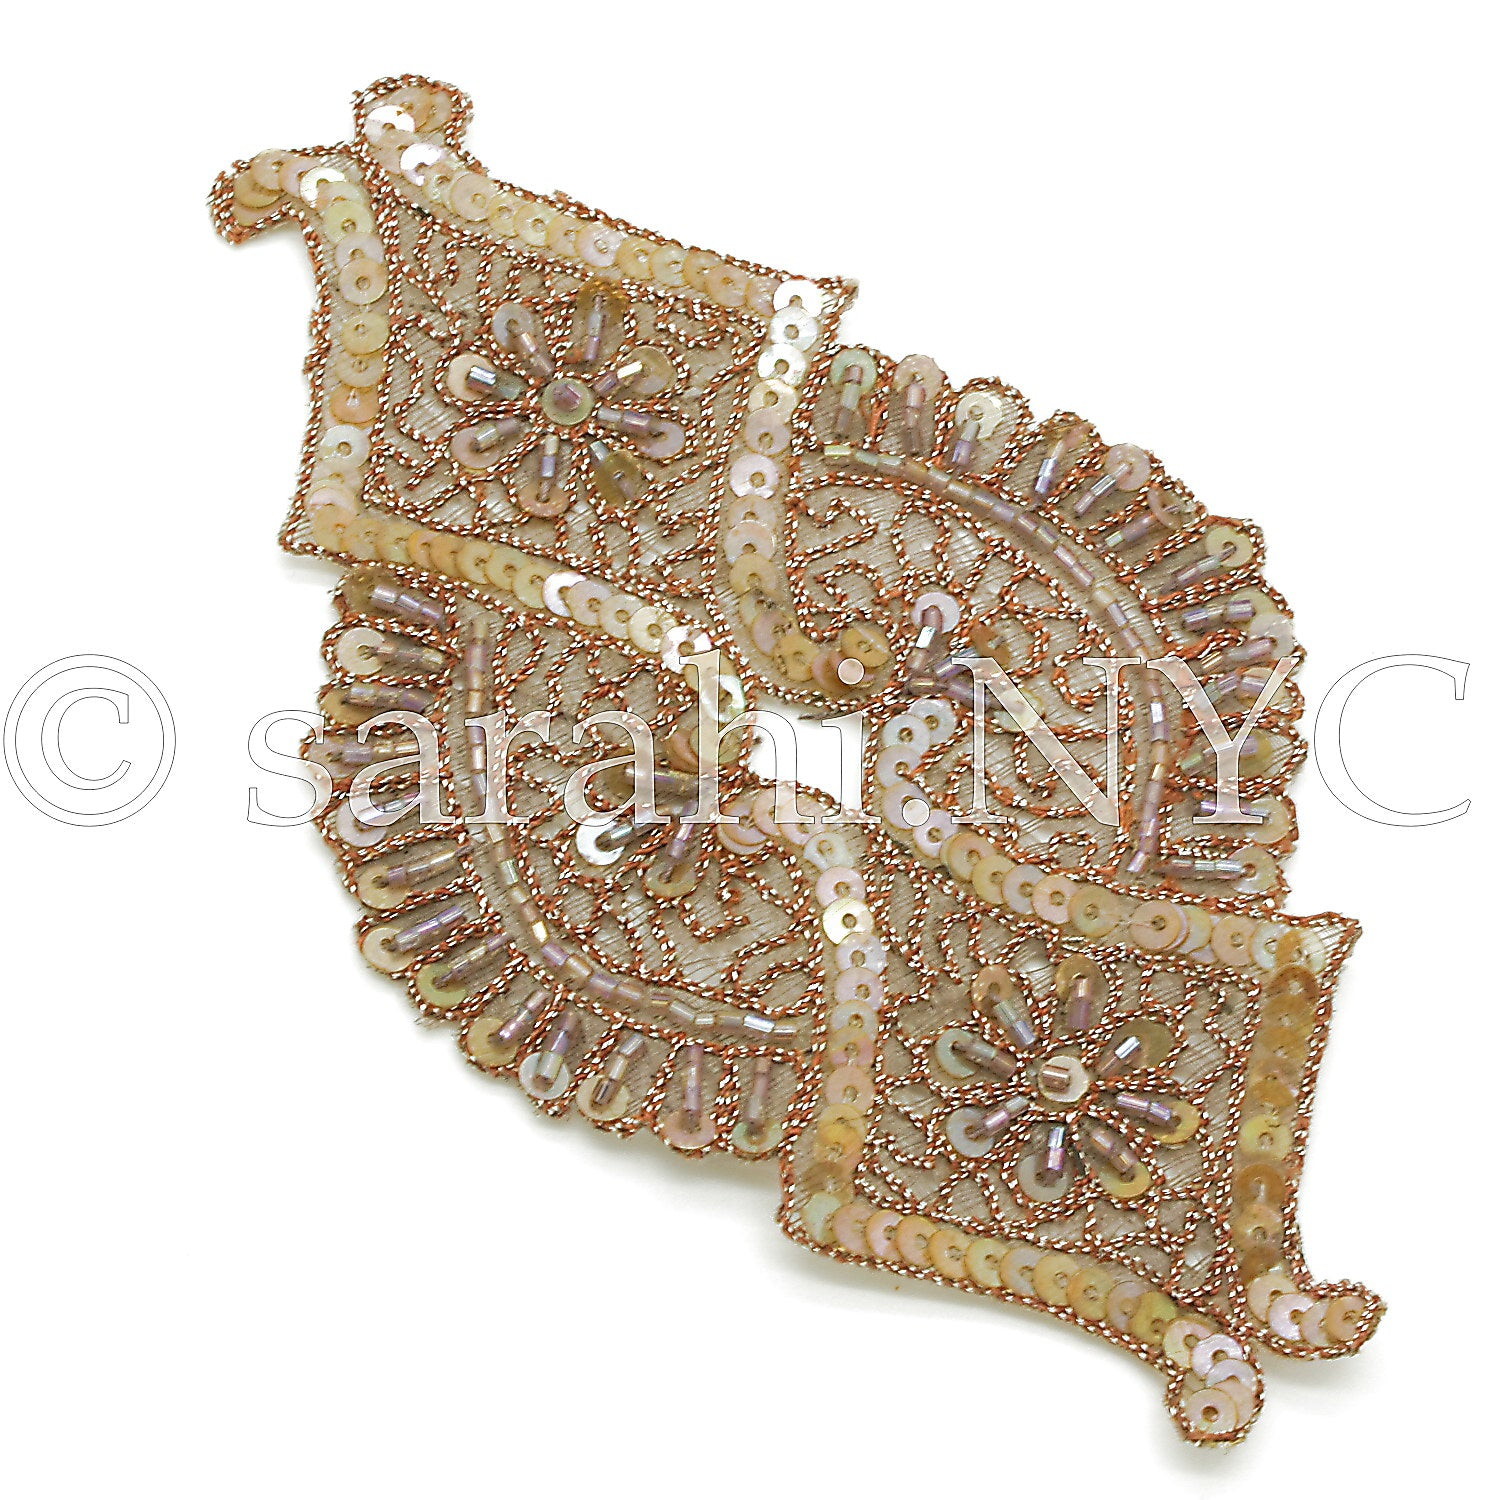 BEIGE BROWN EMBROIDERED SEQUIN APPLIQUE - sarahi.NYC - Sarahi.NYC